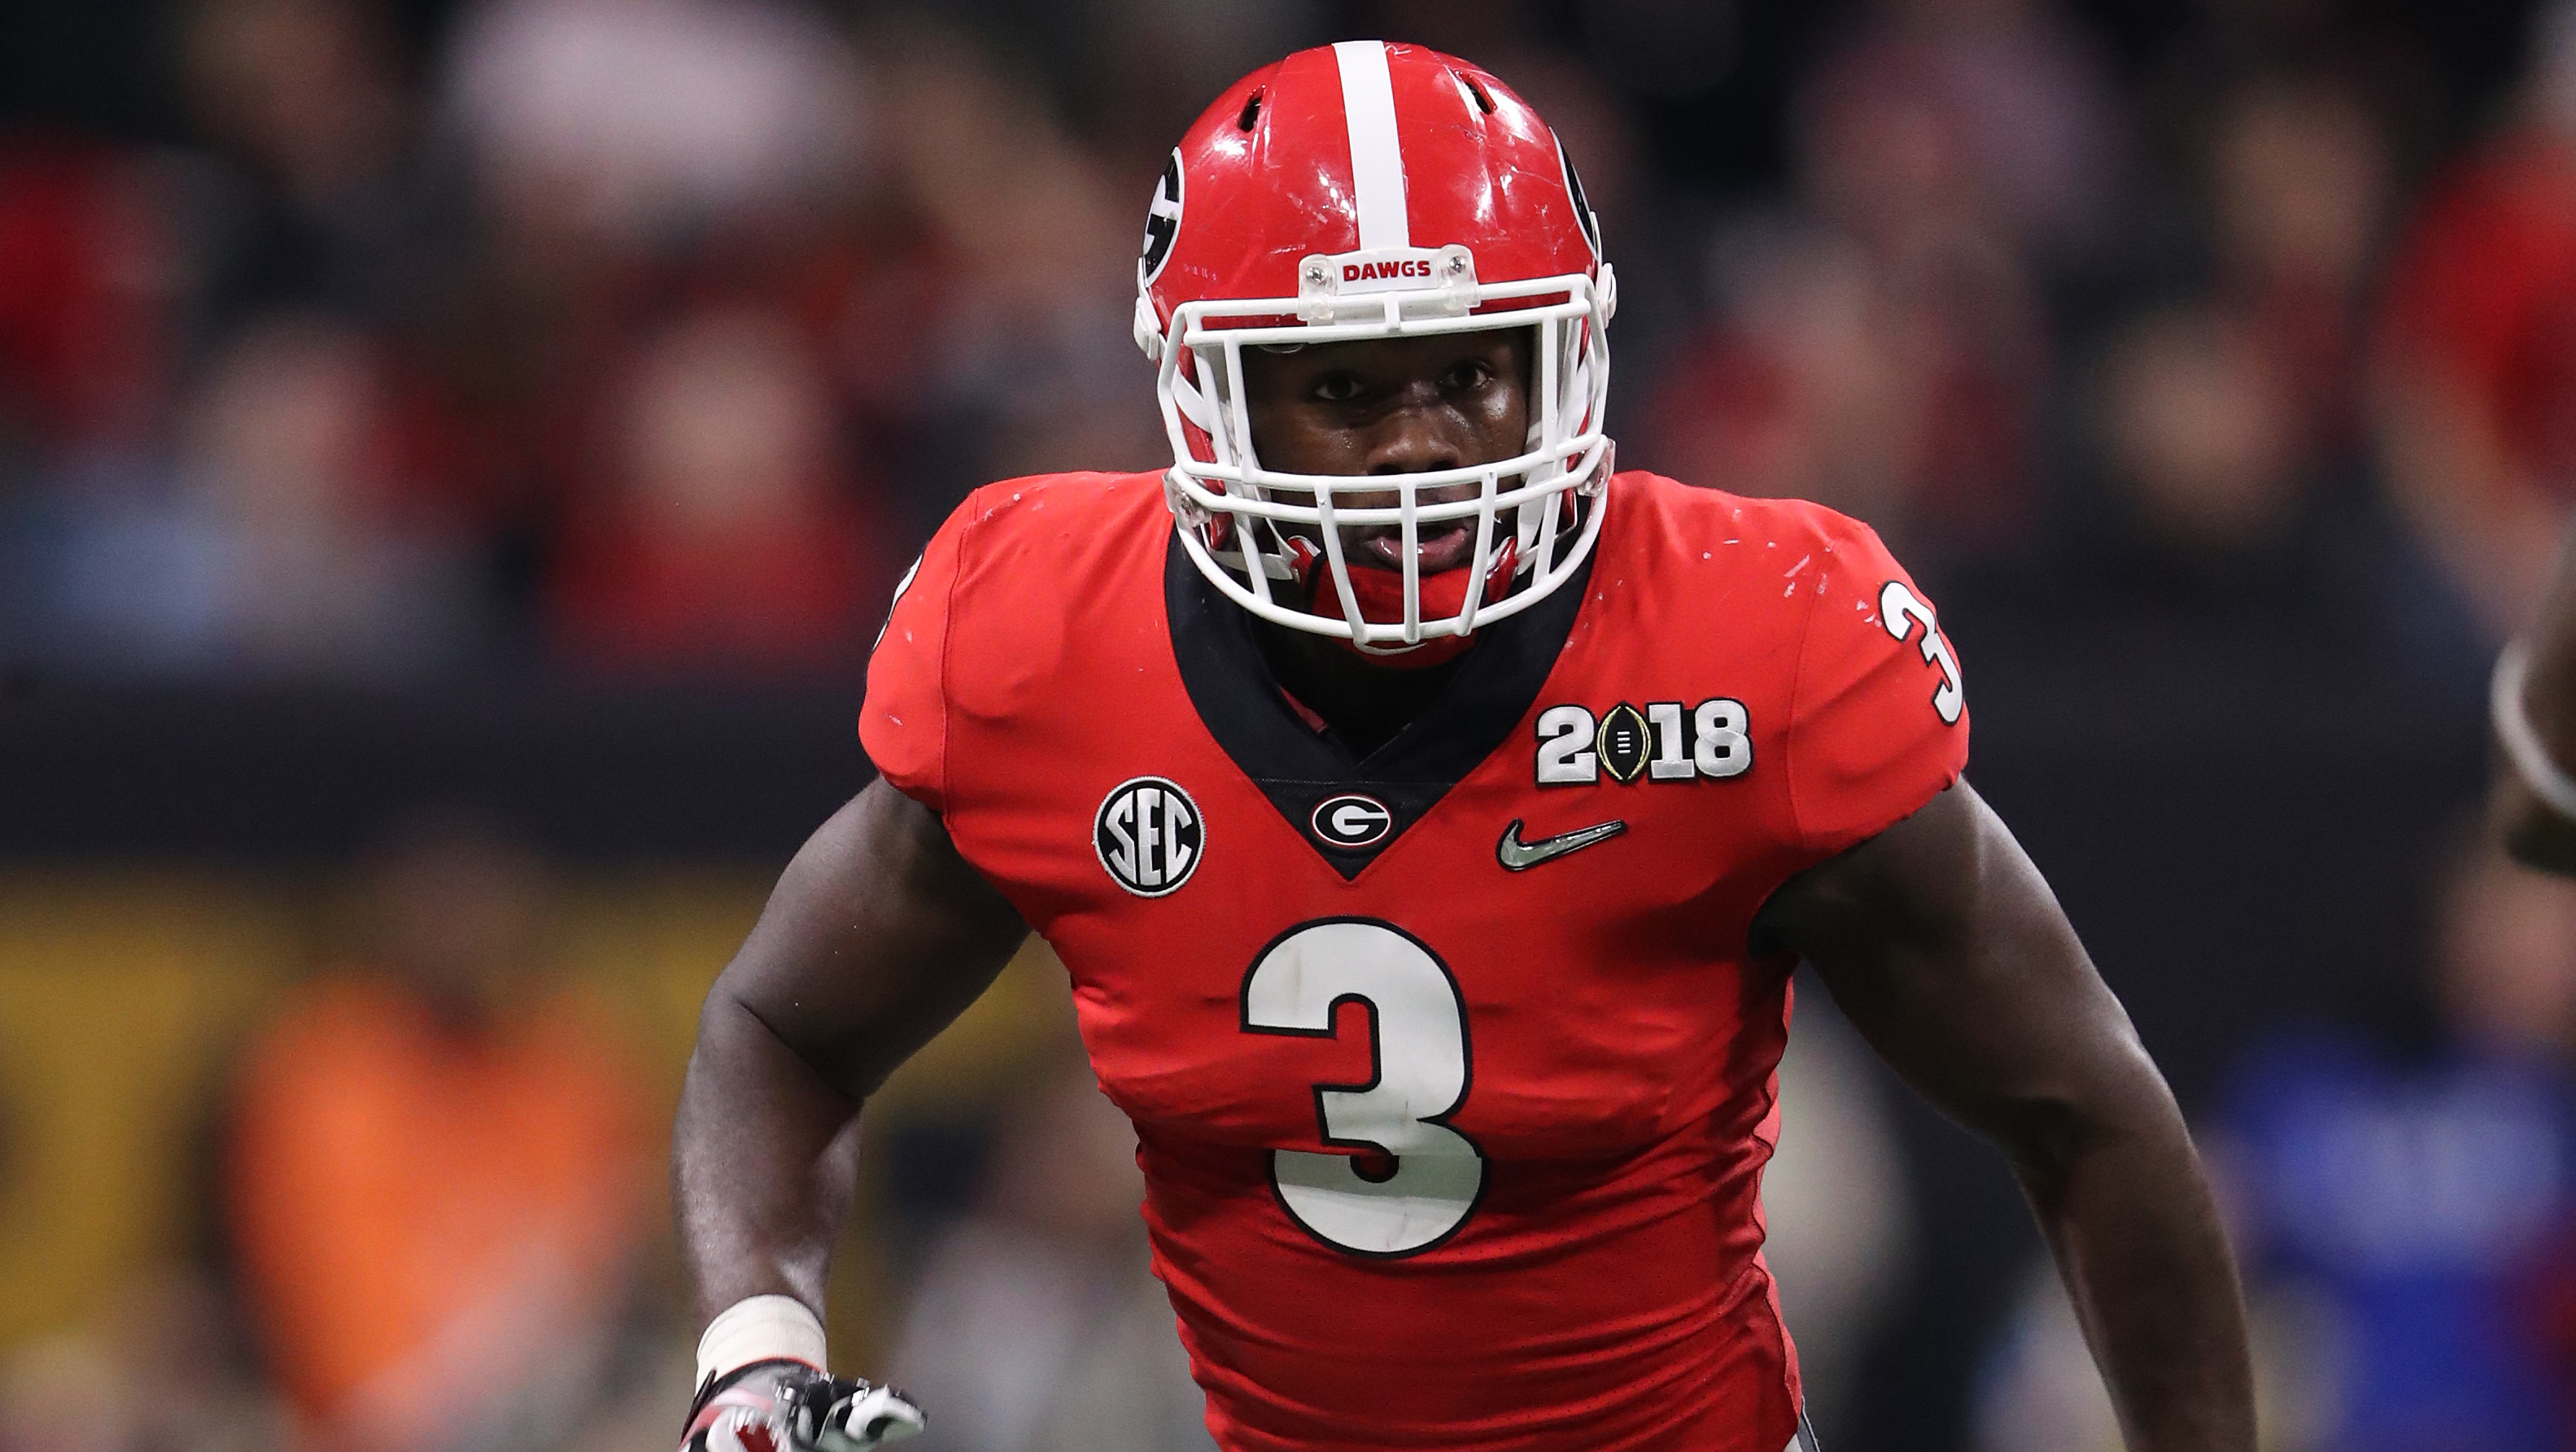 0f58df9b729 Roquan Smith NFL Draft 2018: Scouting Report, Grade for Bears Rookie